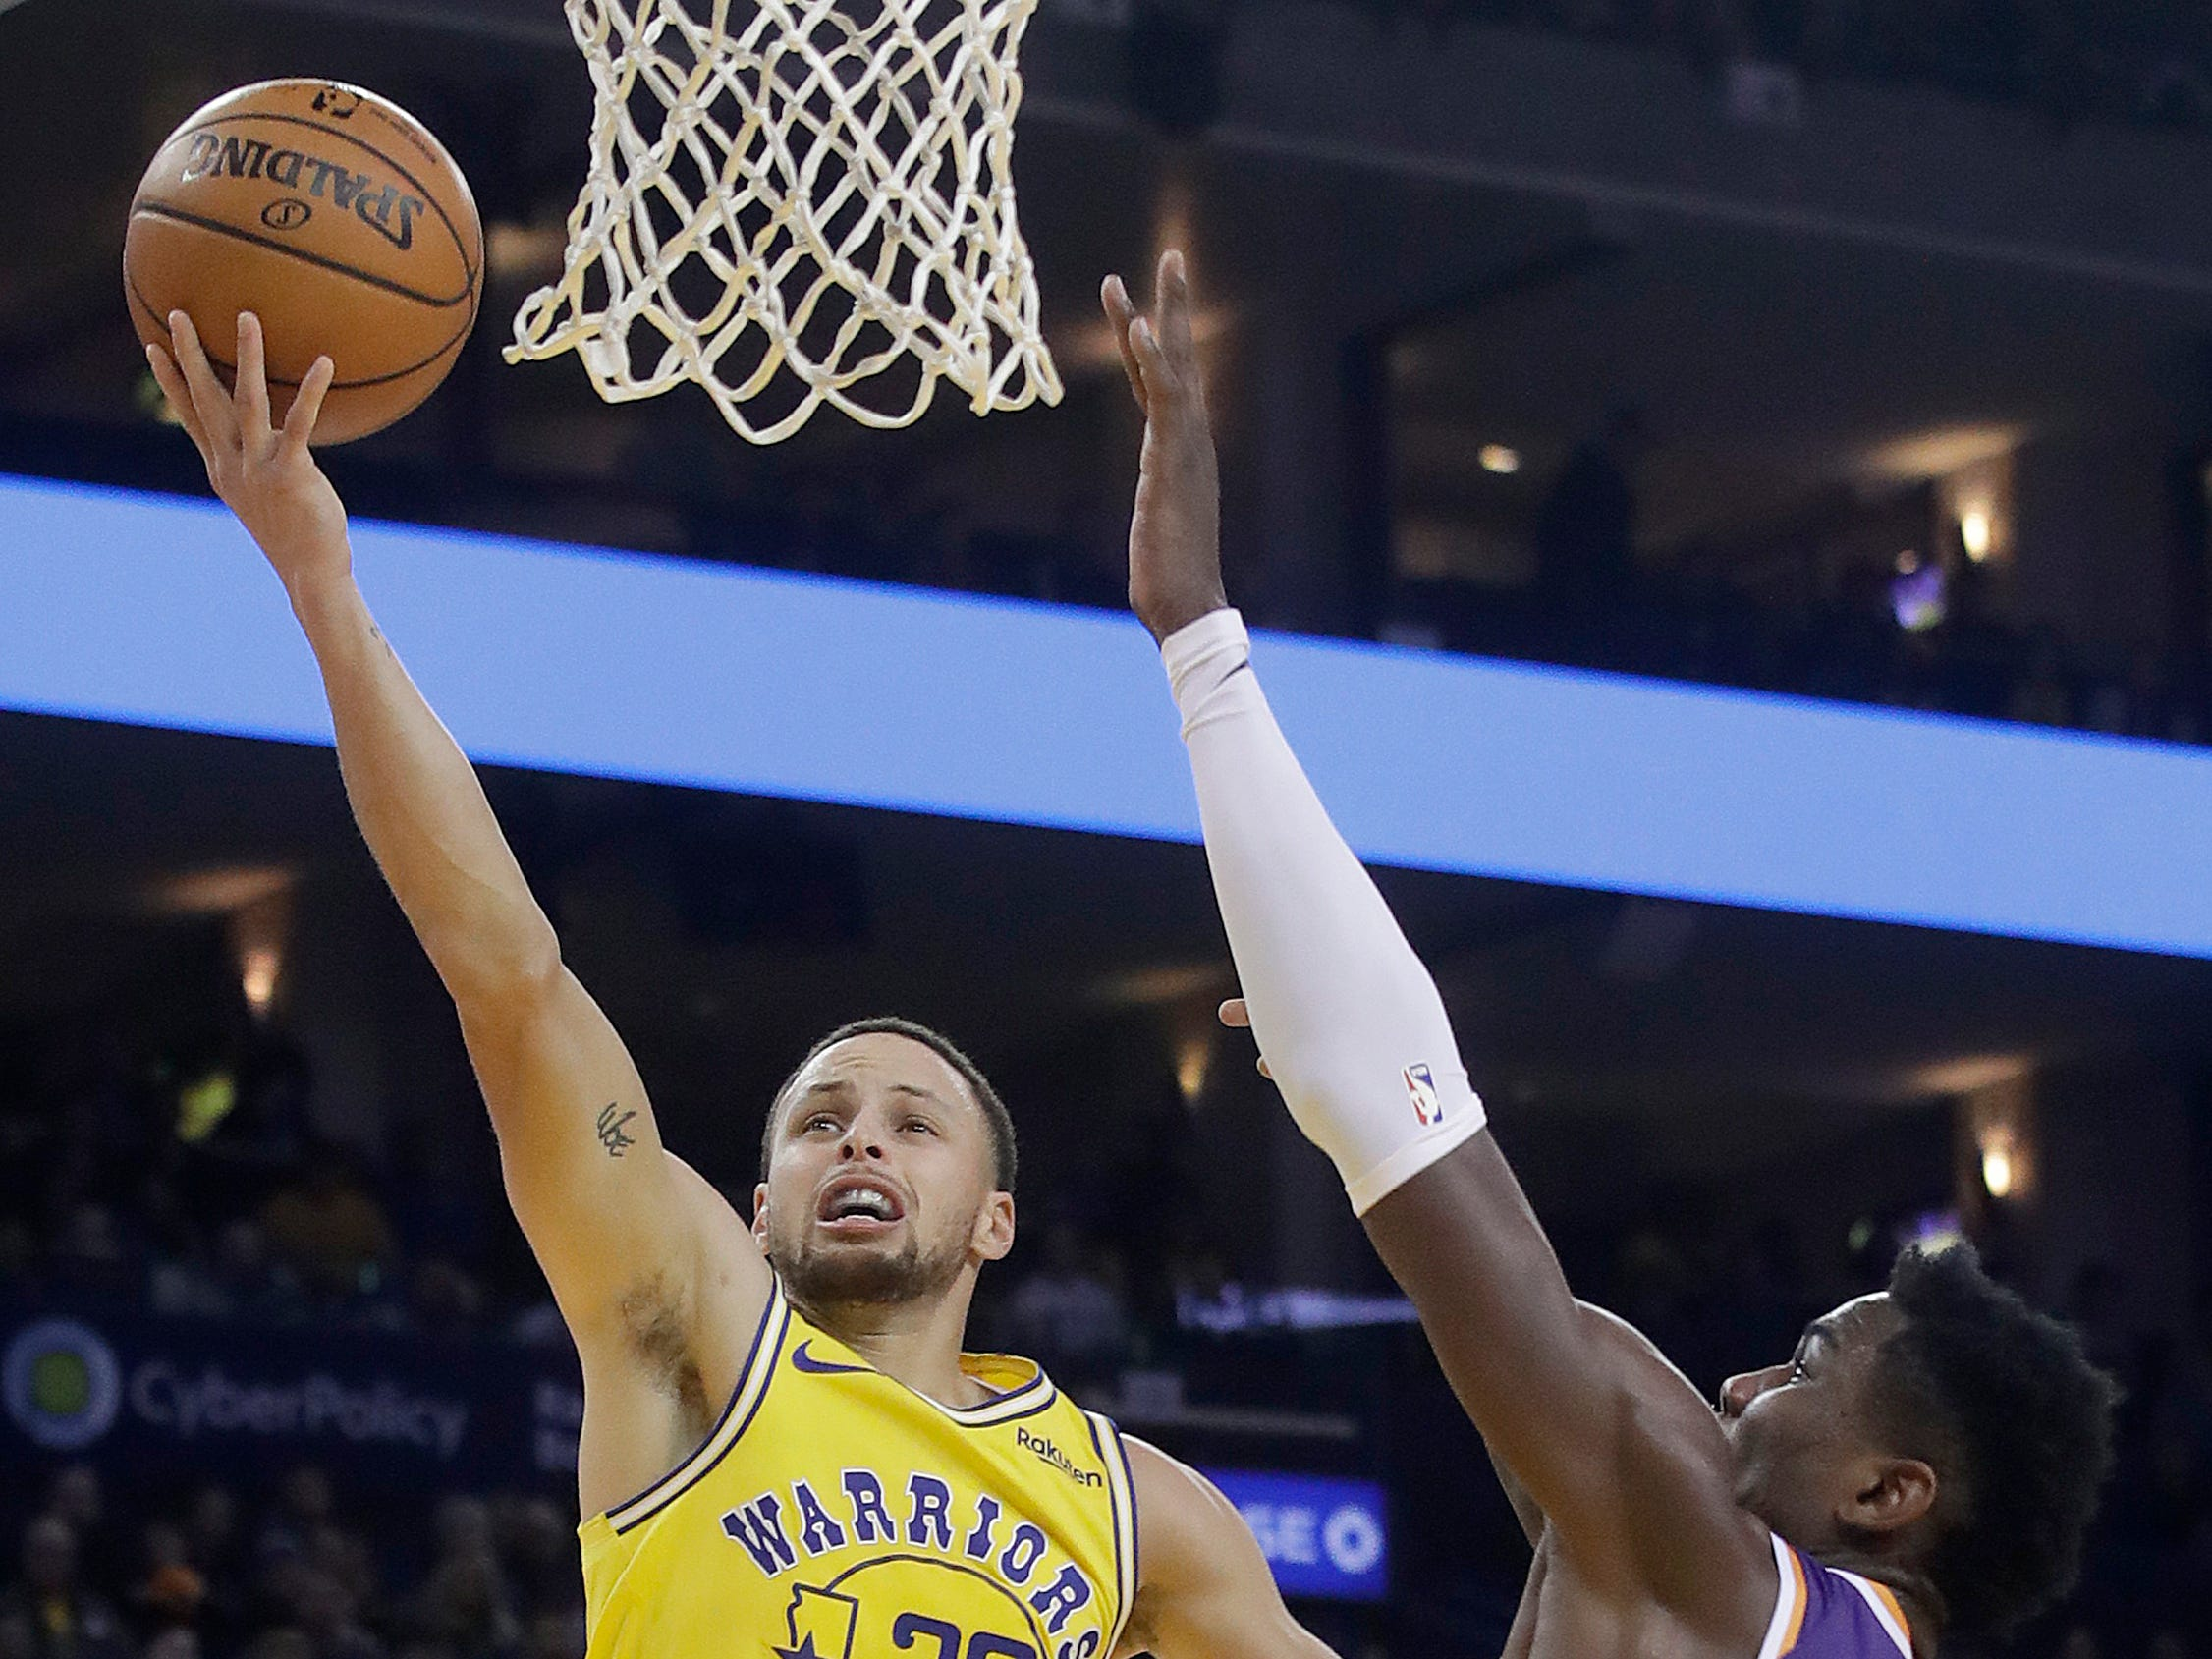 Golden State Warriors guard Stephen Curry, left, shoots against Phoenix Suns center Deandre Ayton, right, during the second half of an NBA basketball game in Oakland, Calif., Sunday, March 10, 2019. (AP Photo/Jeff Chiu)